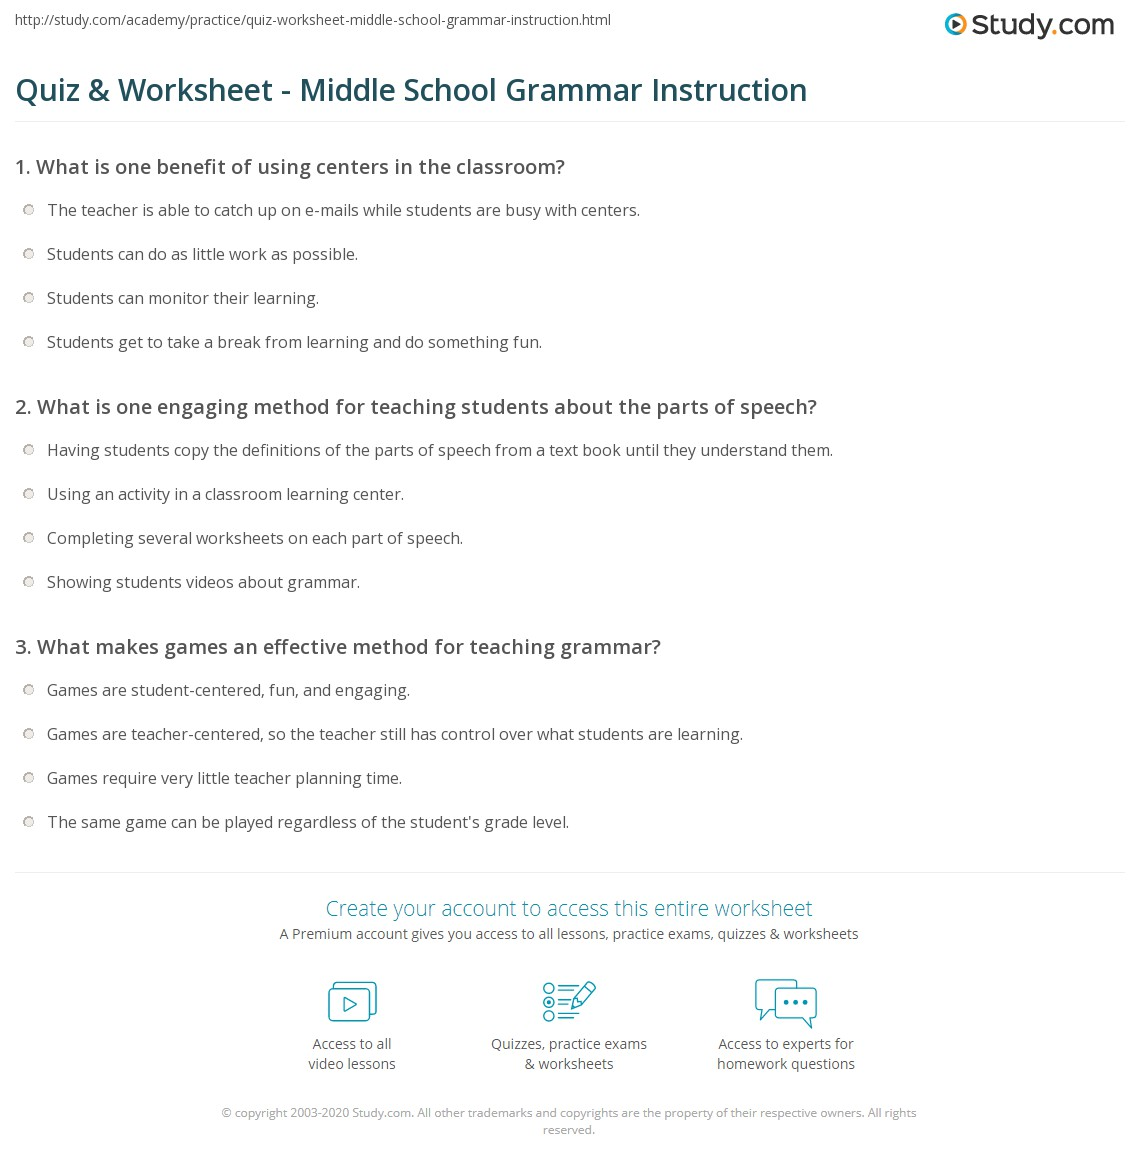 Quiz Worksheet Middle School Grammar Instruction – Parts of Speech Worksheets Middle School